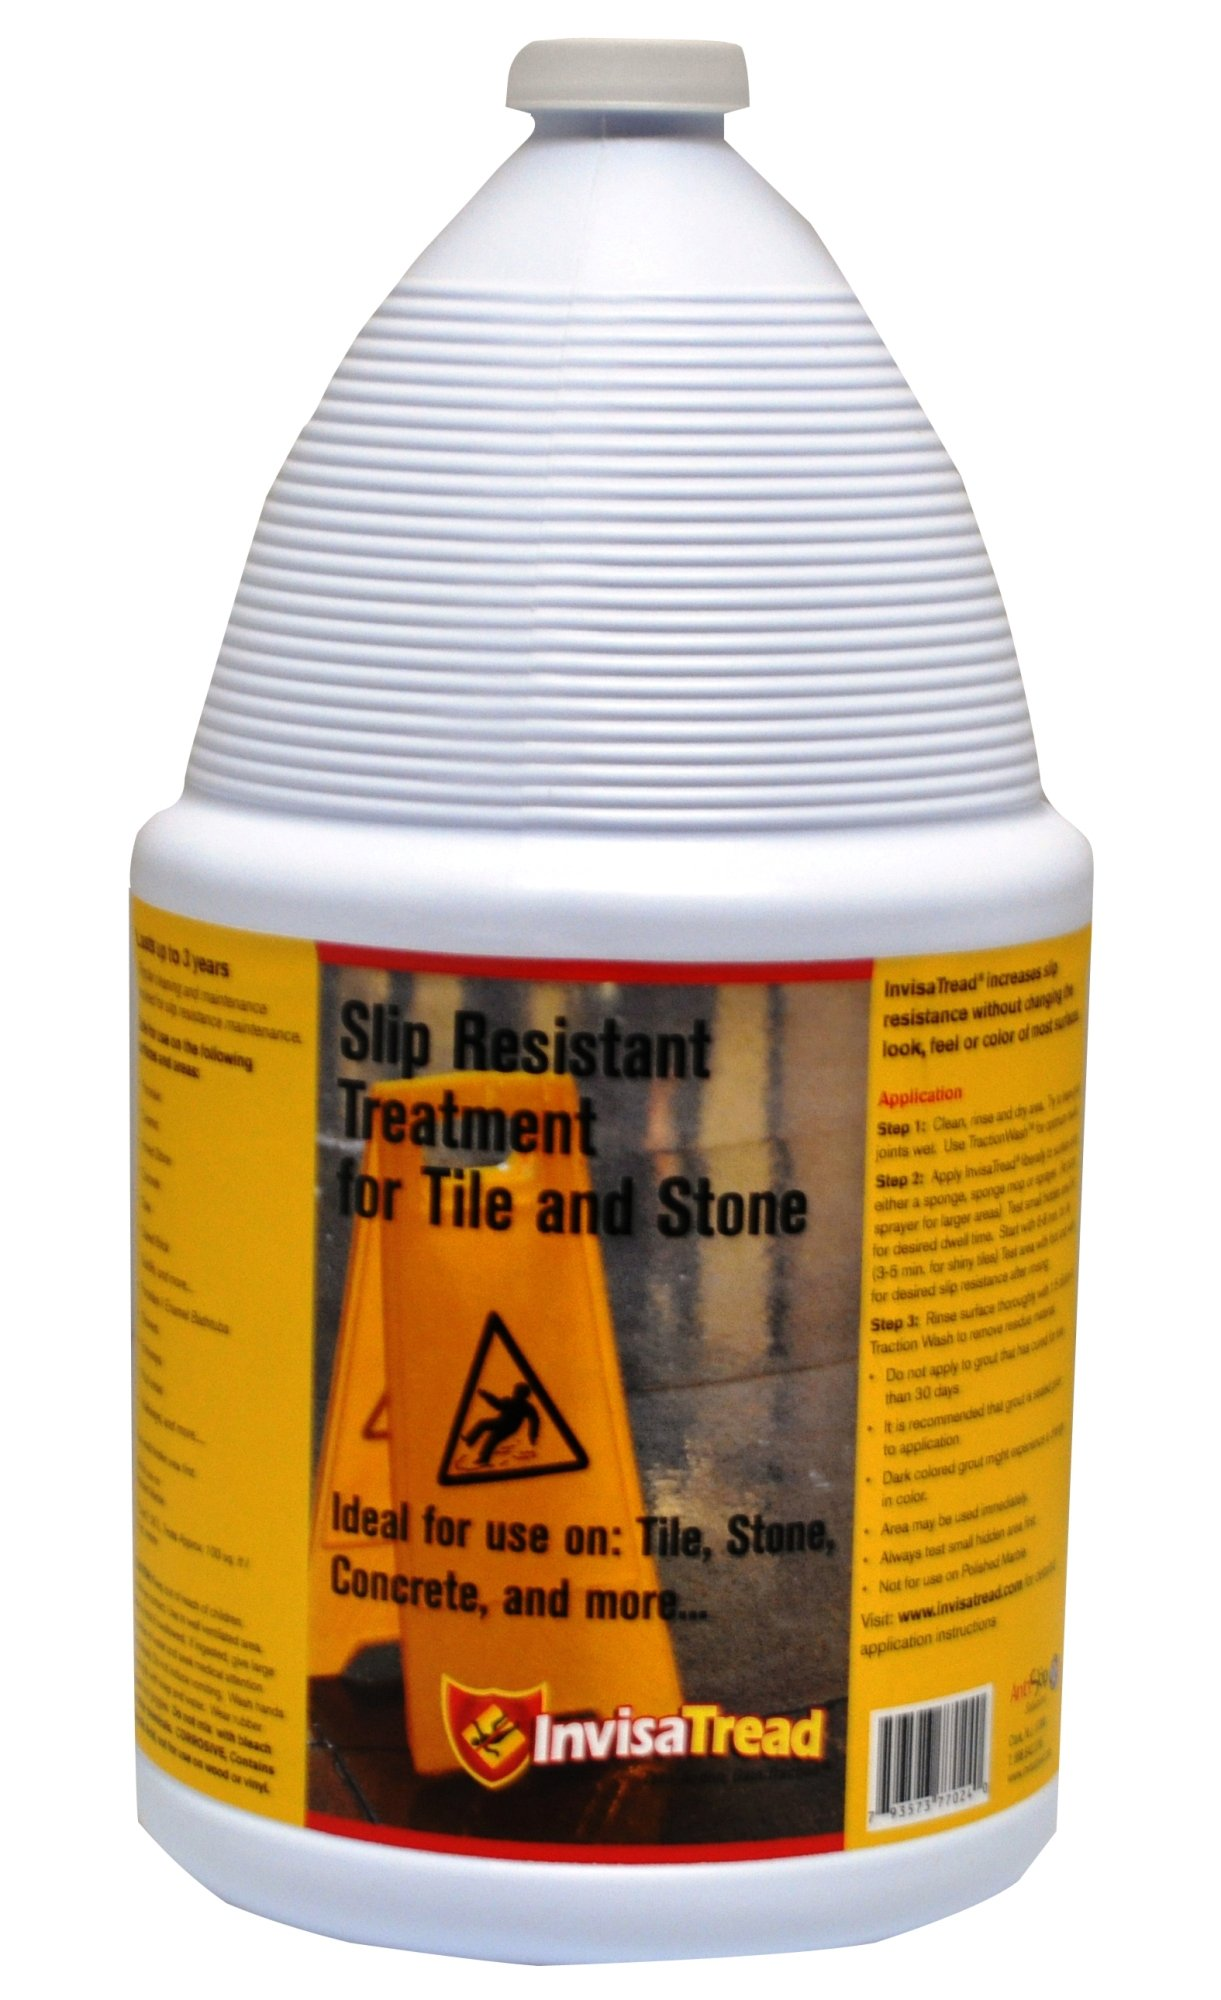 InvisaTread IVT128 1-Gallon Slip Resistant Treatment for Tile and Stone